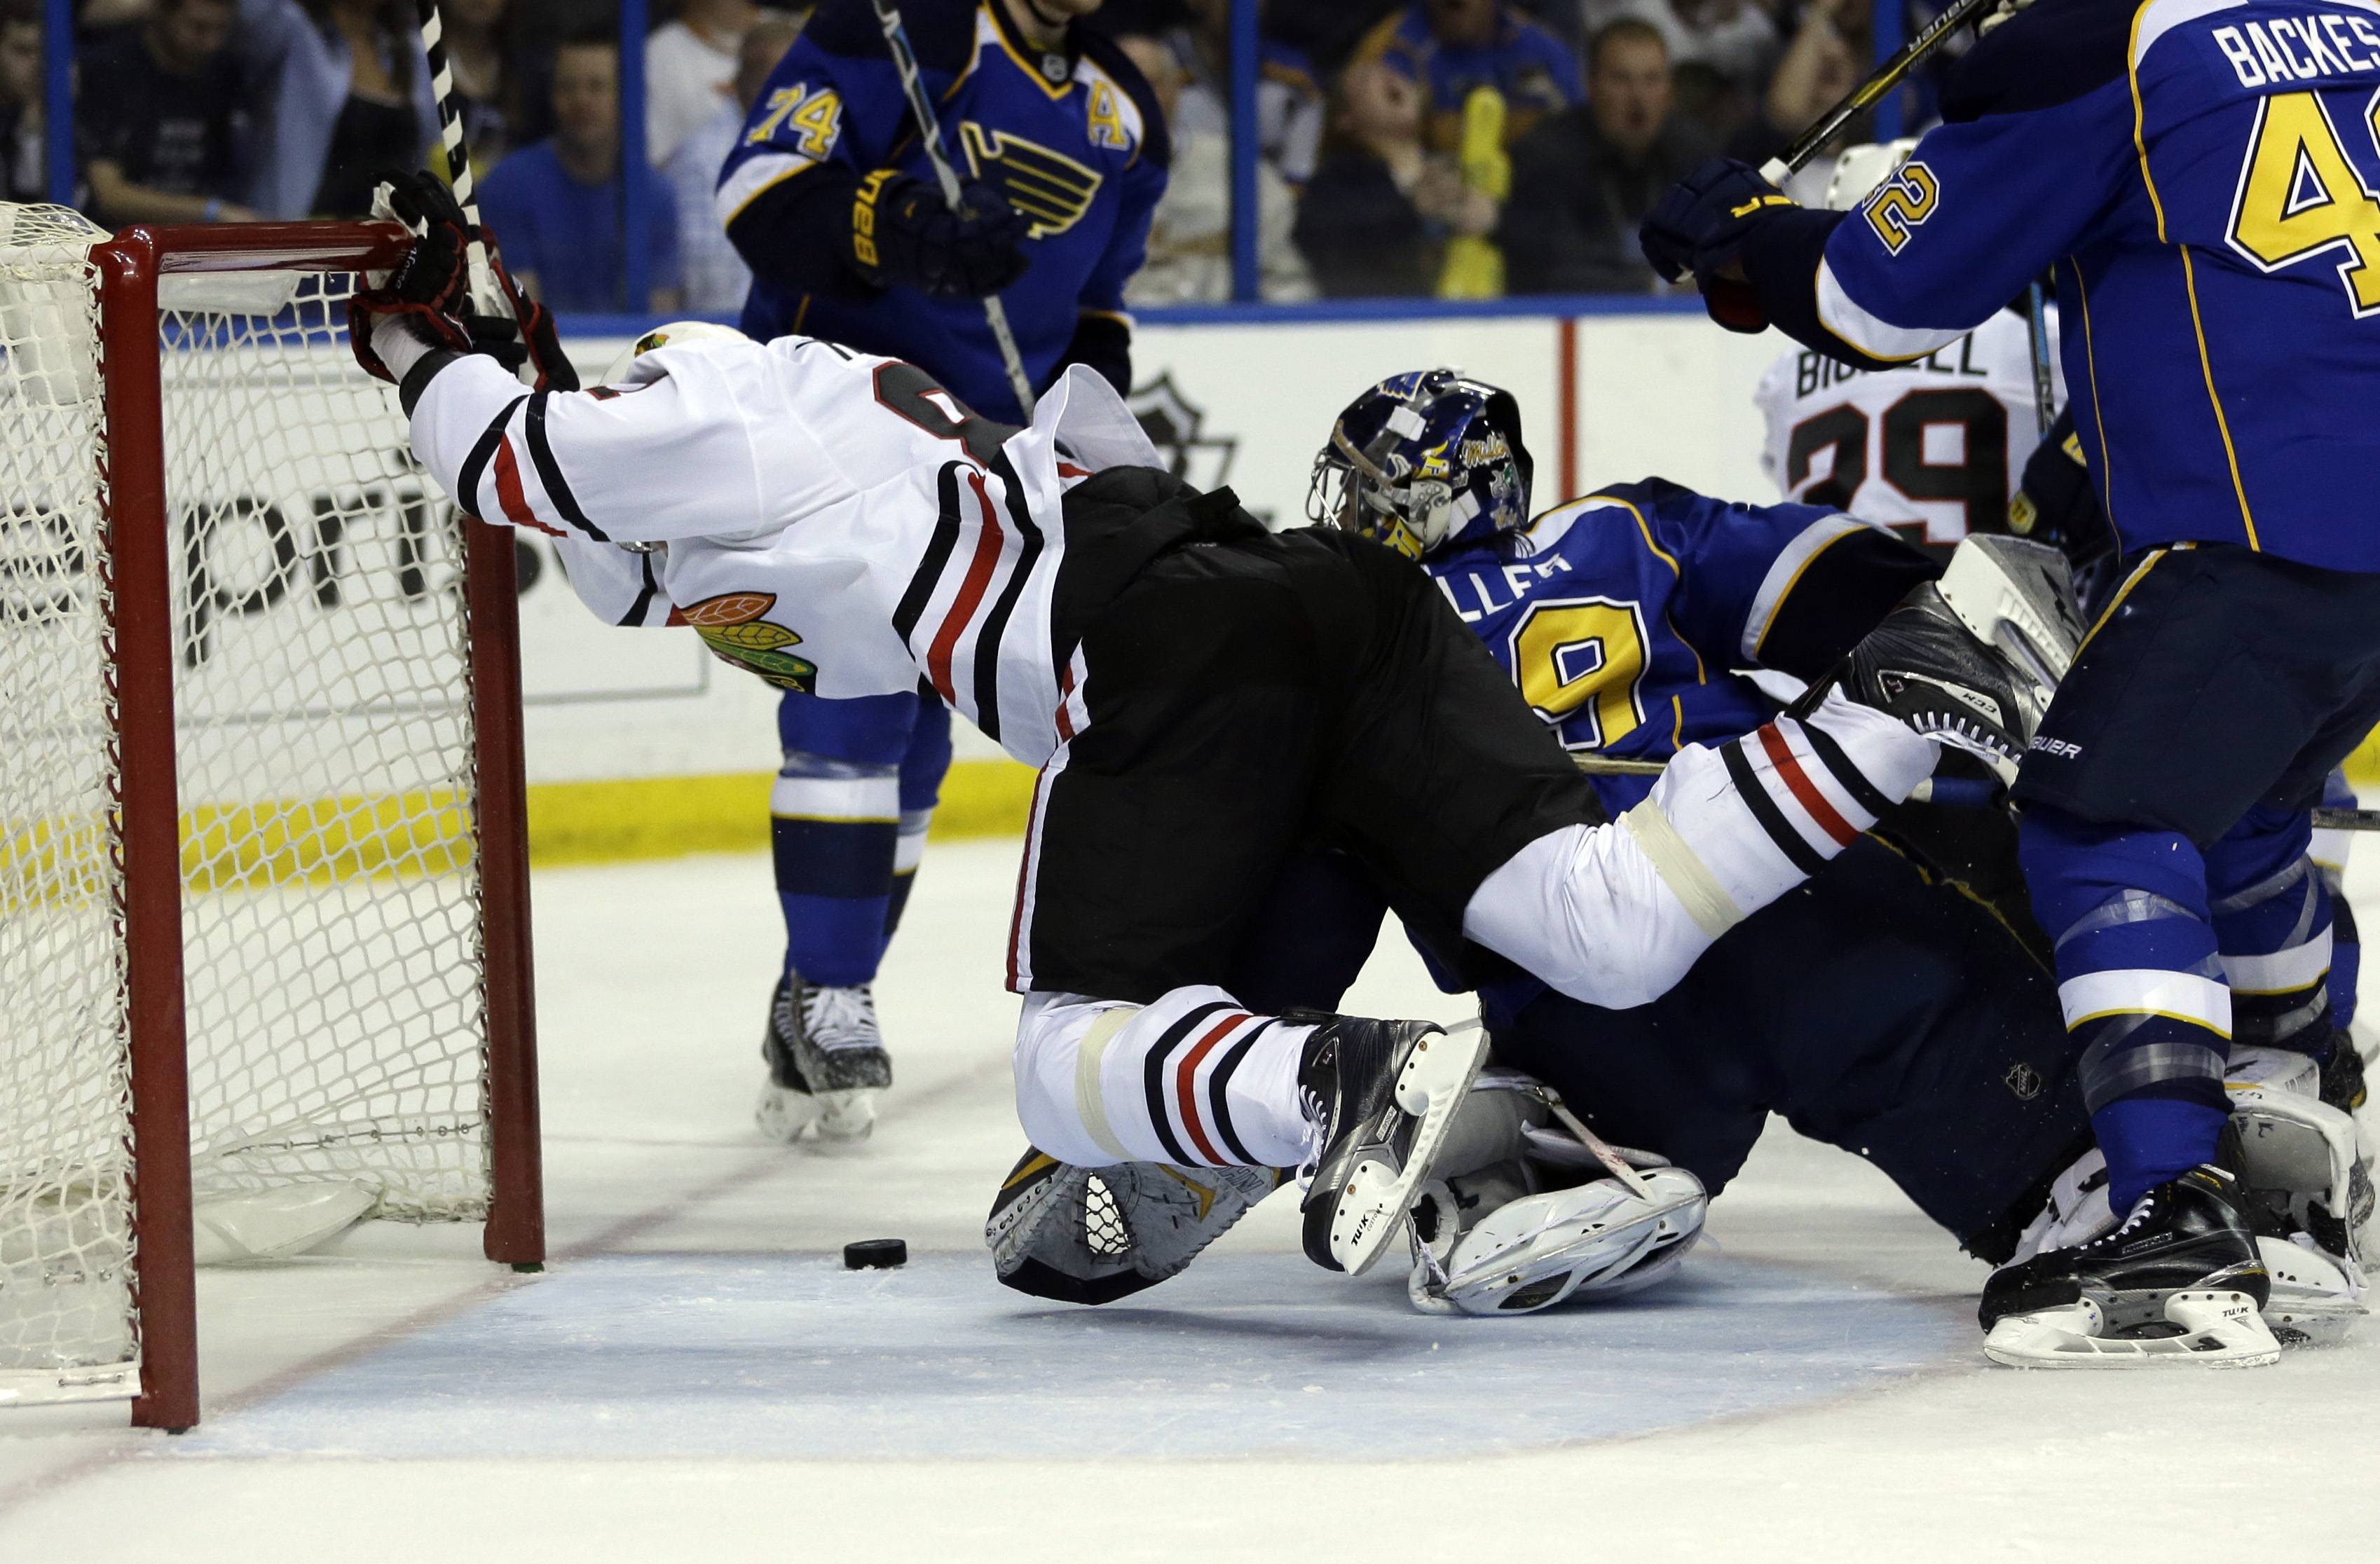 Just after Marian Hossa slapped the puck into the net in the first period of Game 5 on Friday, the Blues' David Backes checked him into the next. Backes missed Games 3 and 4 after a hard check by the Hawks' Brent Seabrook in Game 2, and many hockey pundits incorrectly theorized the Hawks were finished.